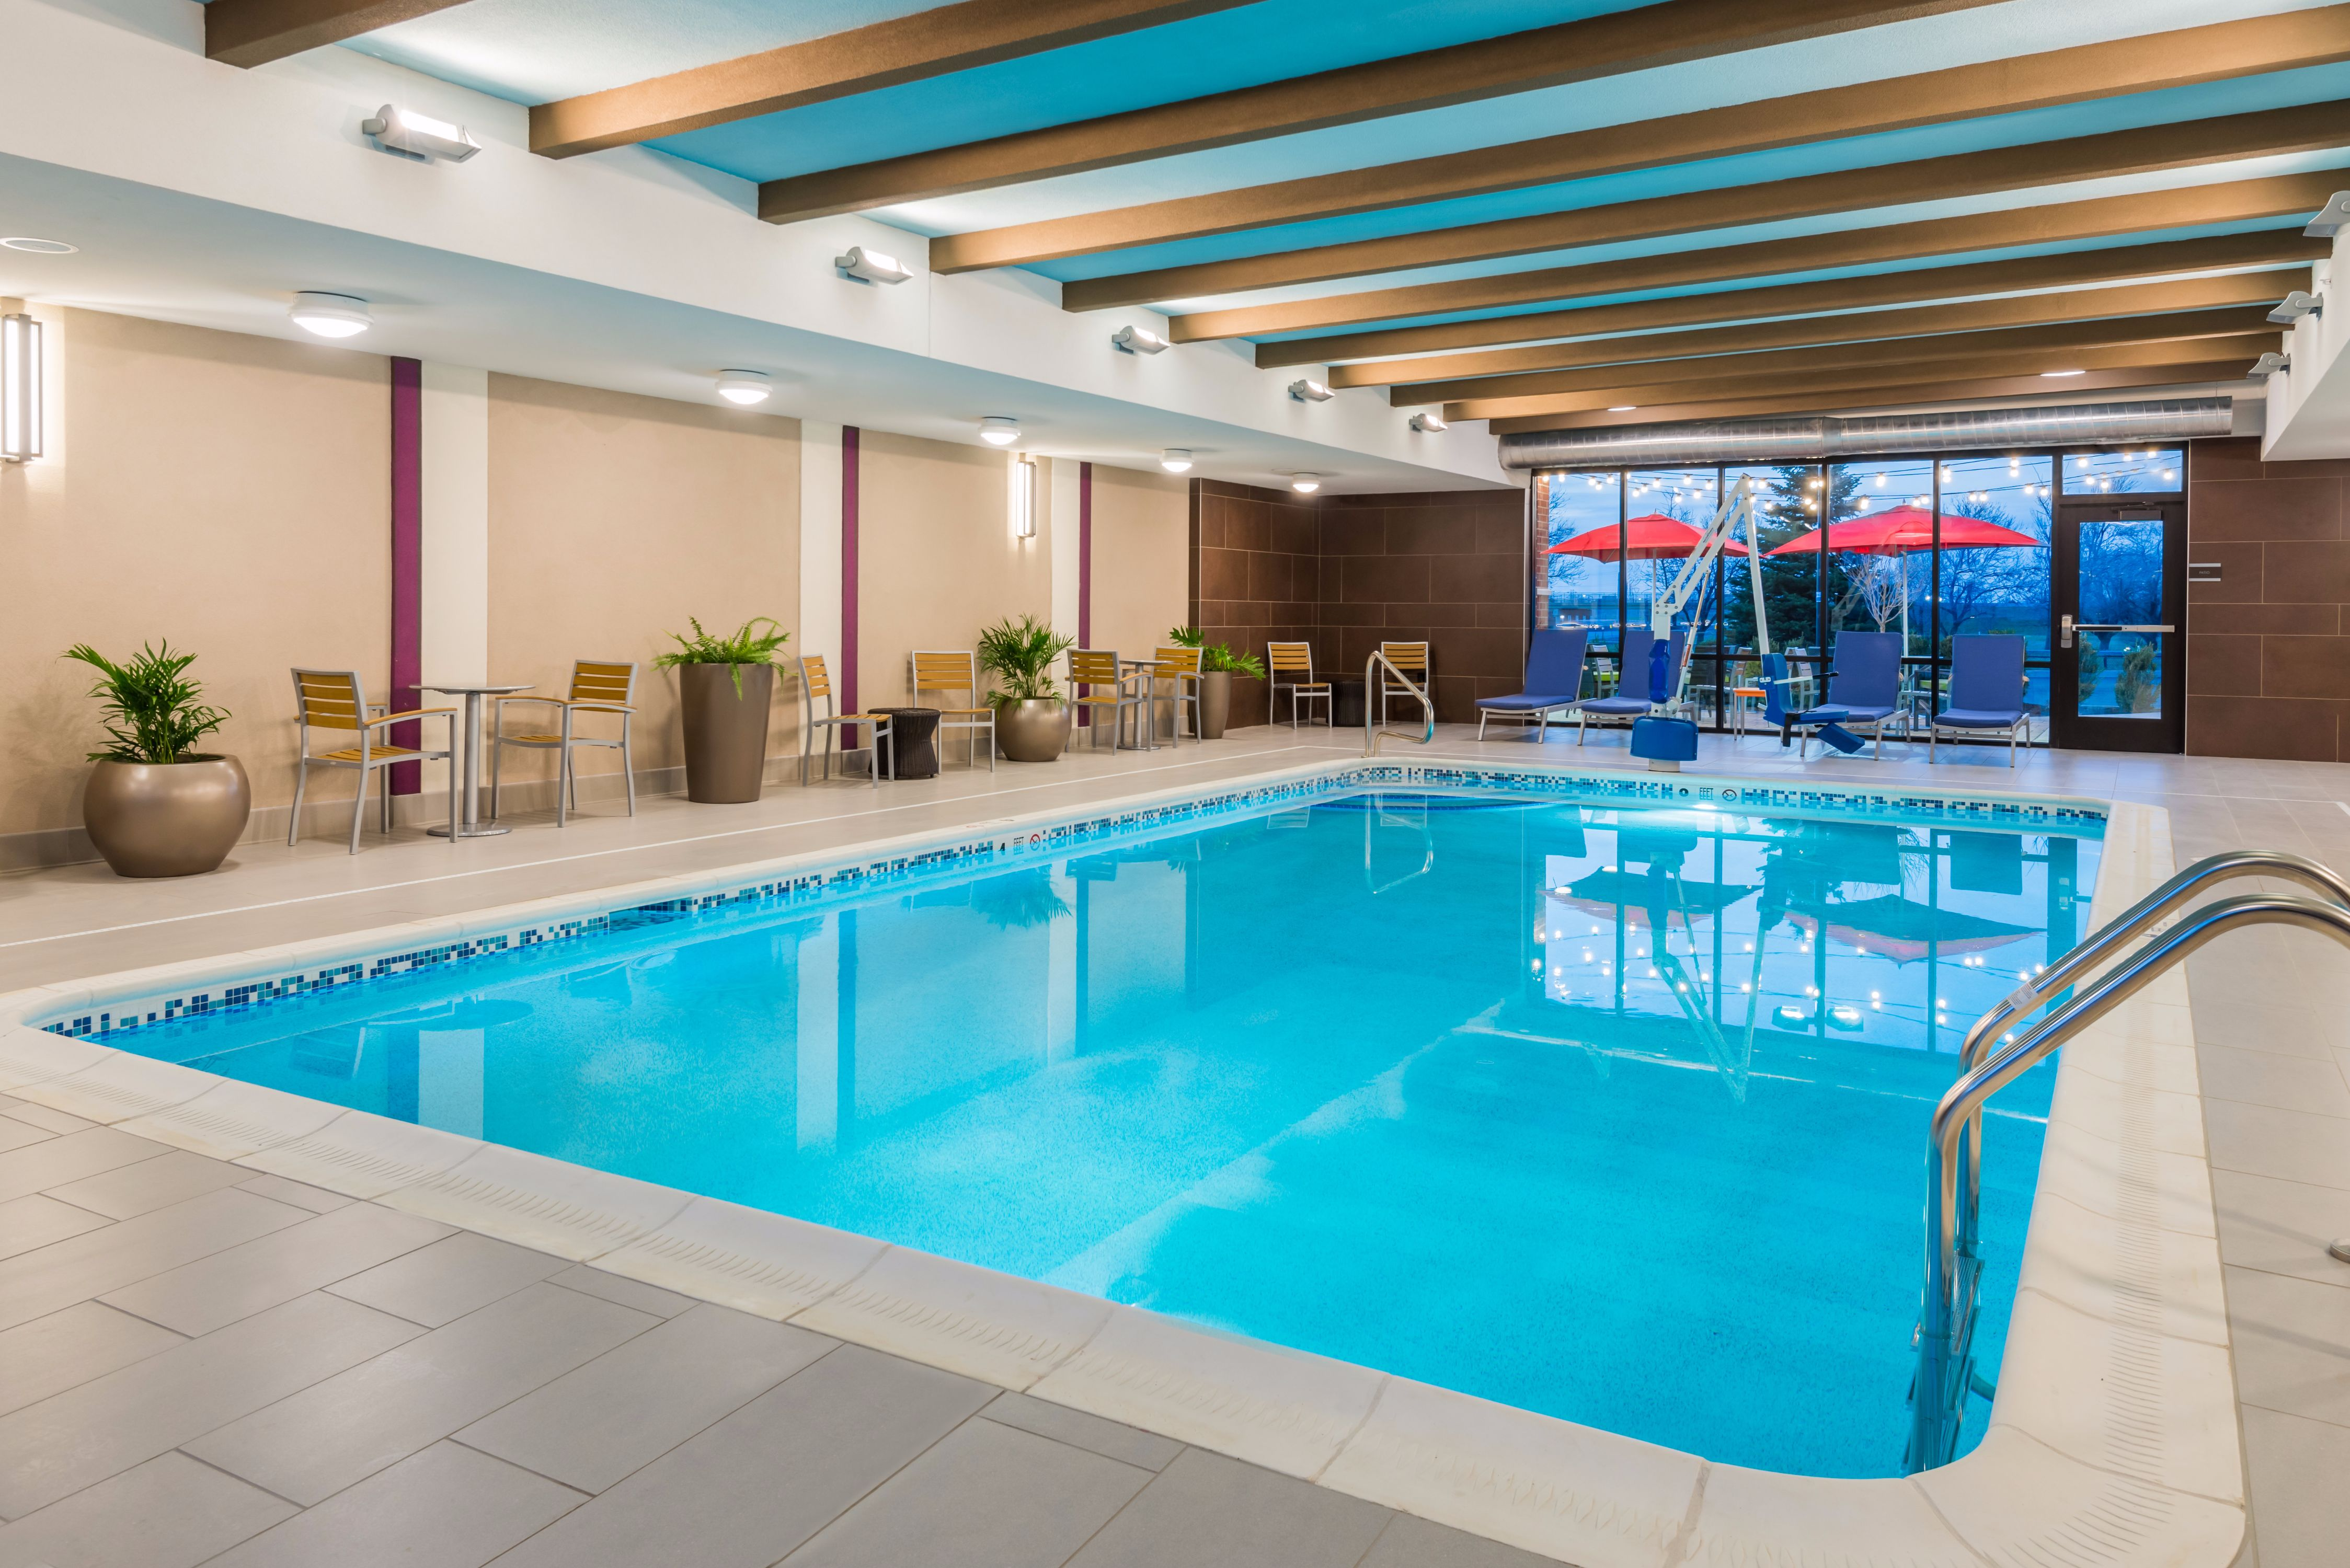 Hotels Near Buffalo Airport With Indoor Pool